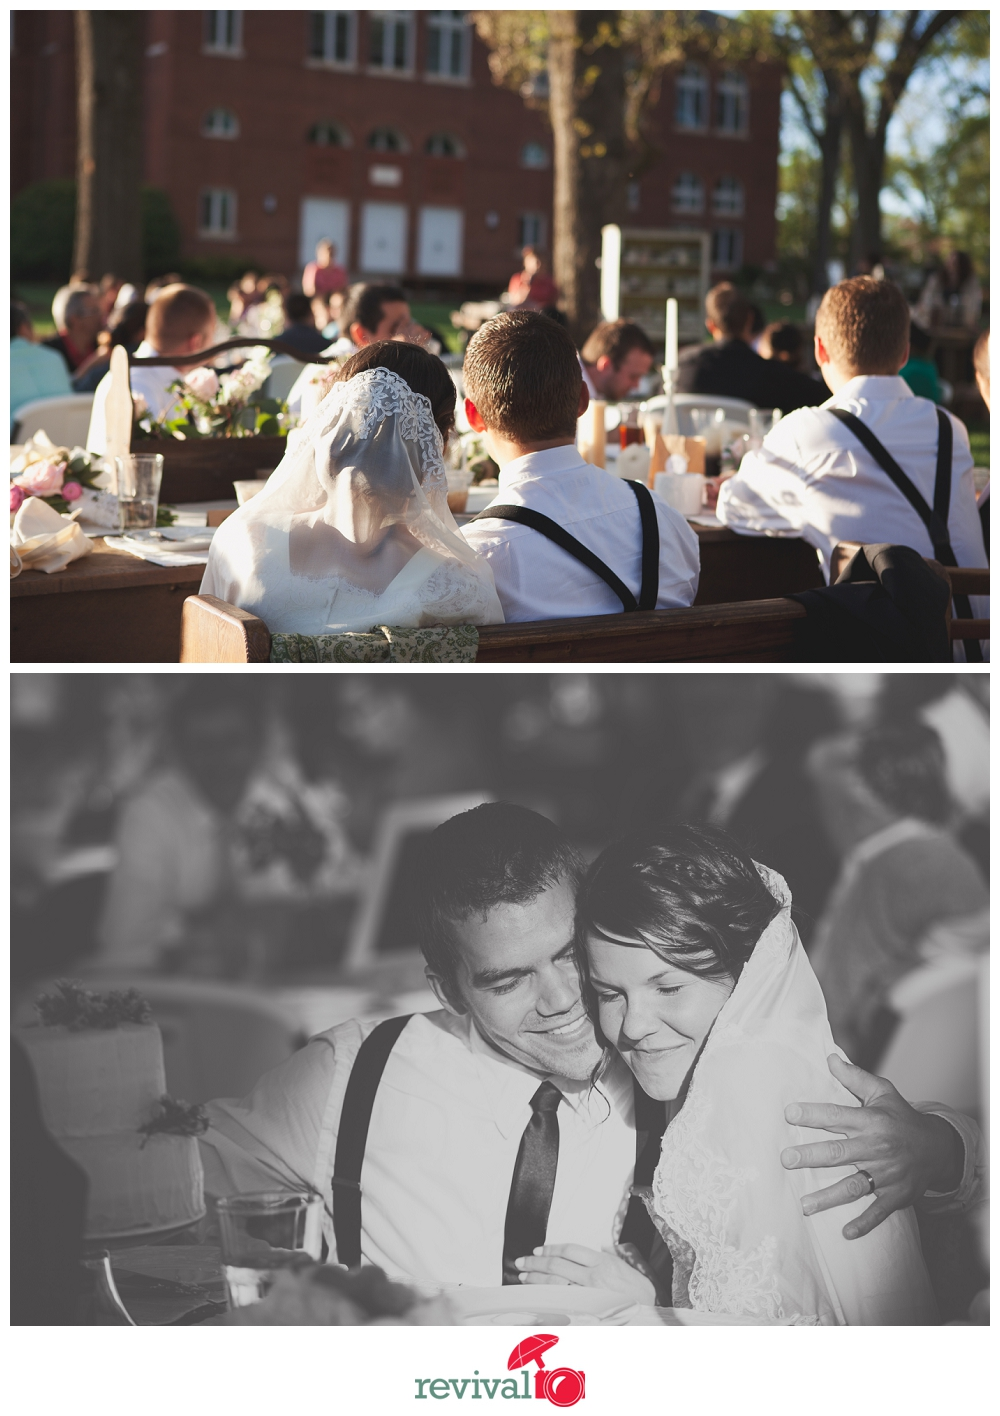 How to Plan a DIY Vintage Rustic Chic Wedding Keeping it Thrifty Photos by Revival Photography Photo